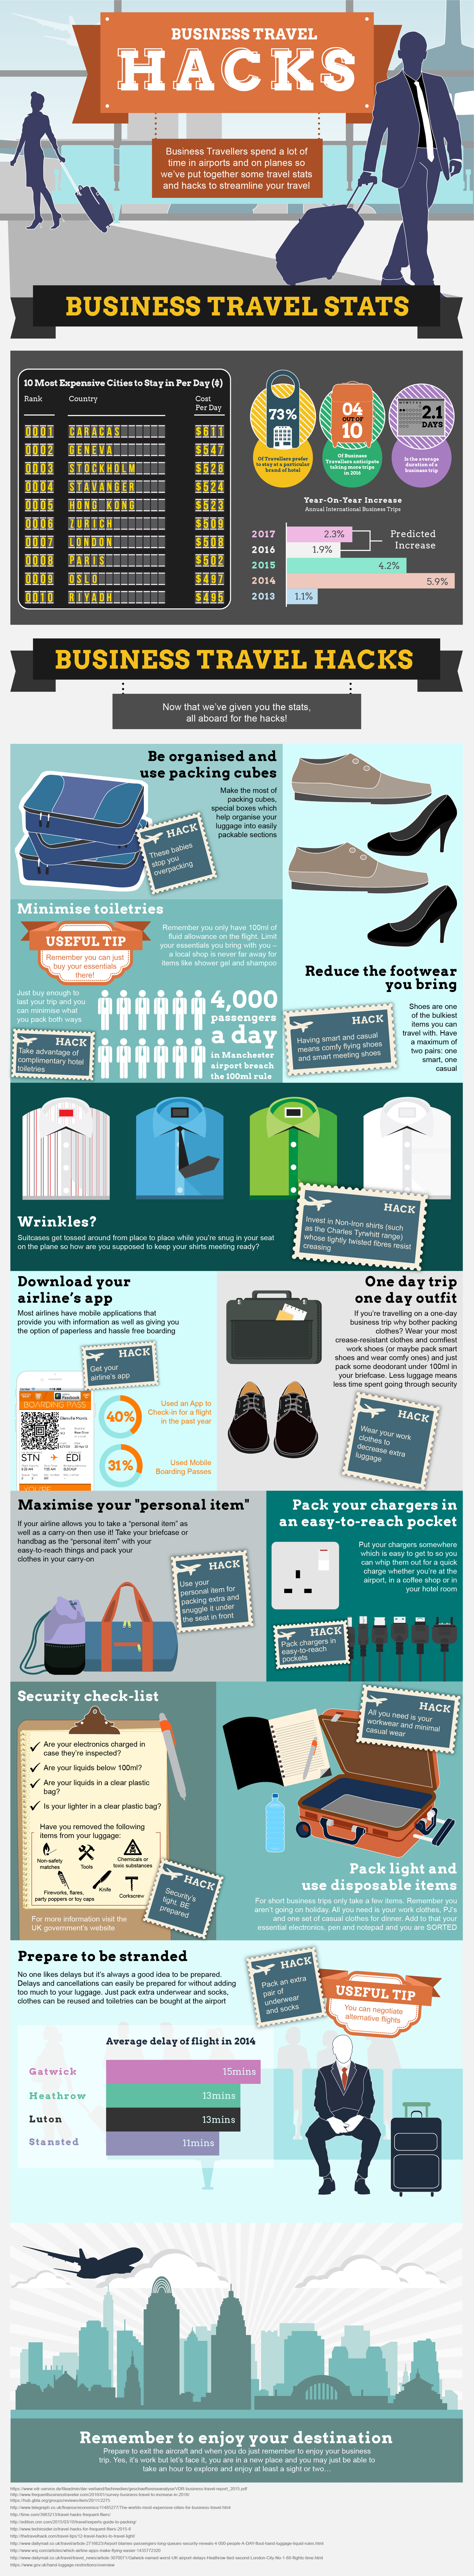 Business Travel Hacks Infographic